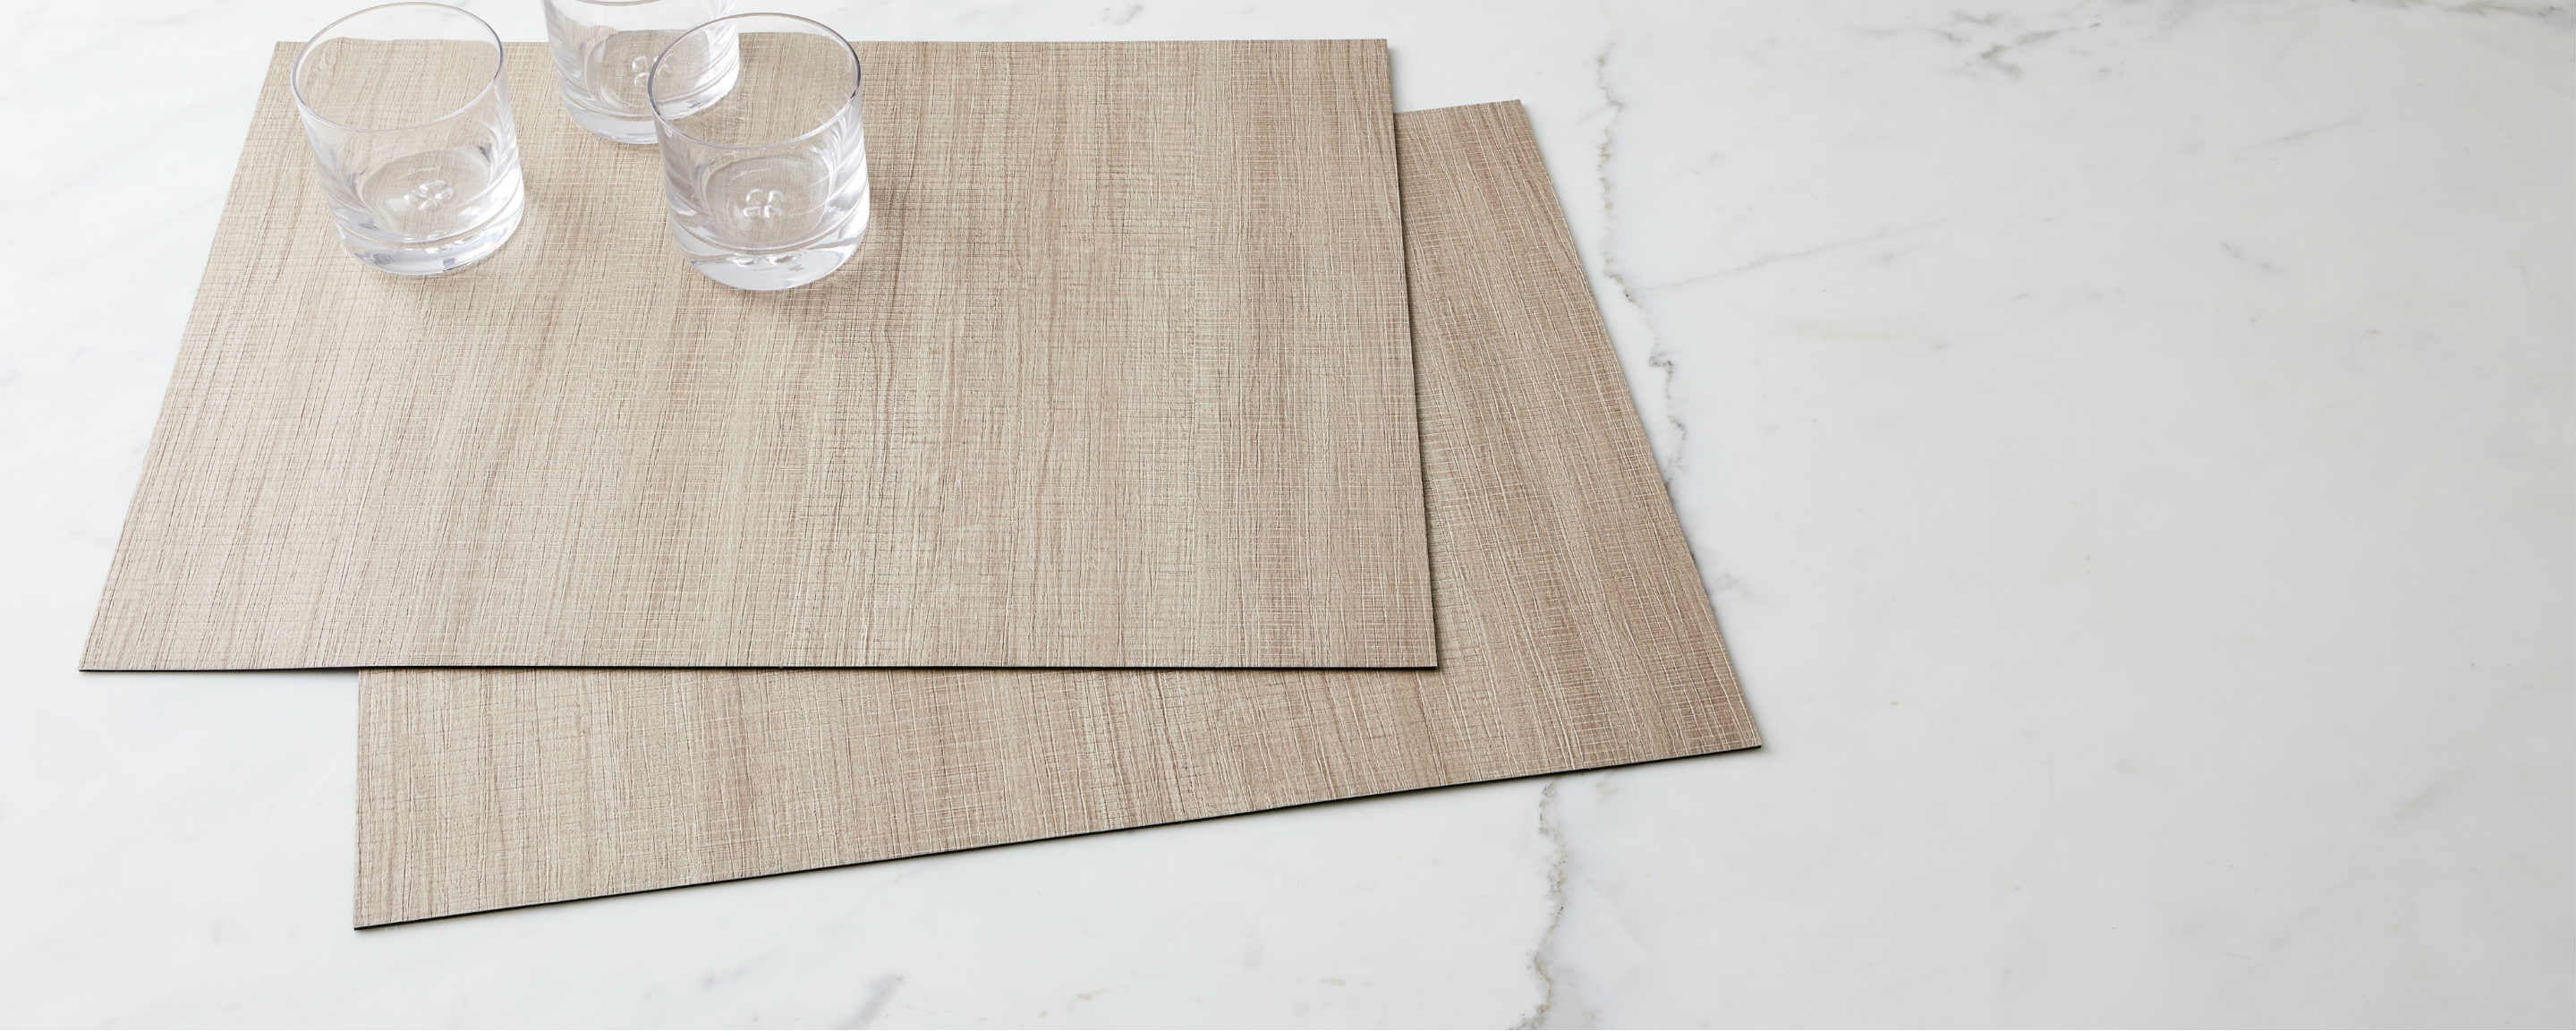 textured light driftwood placemat